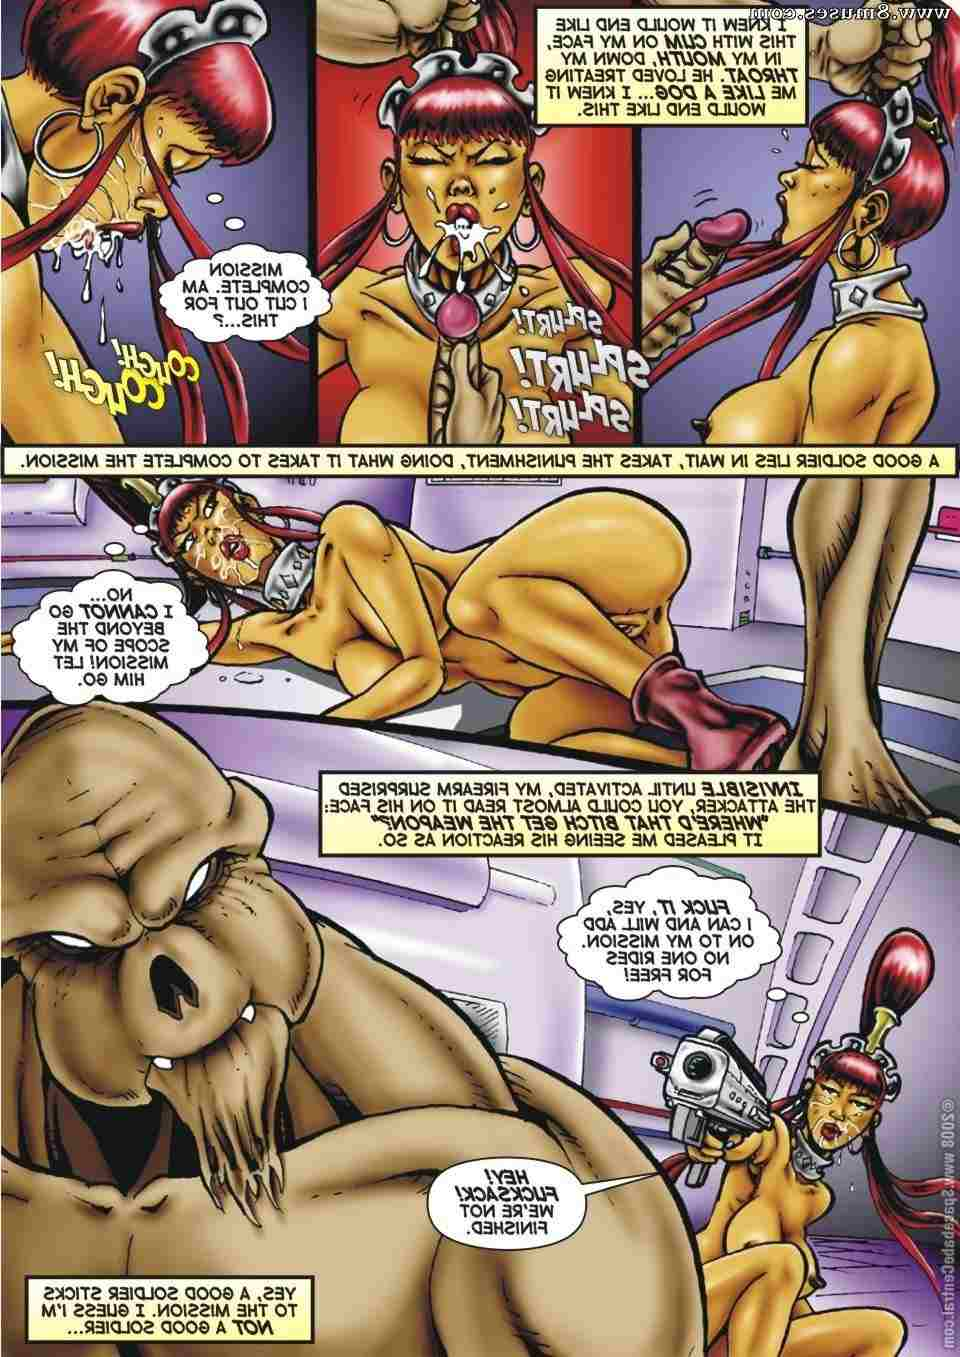 Central-Comics/Space-Babe-Central/Alien-Huntress Alien_Huntress__8muses_-_Sex_and_Porn_Comics_4.jpg